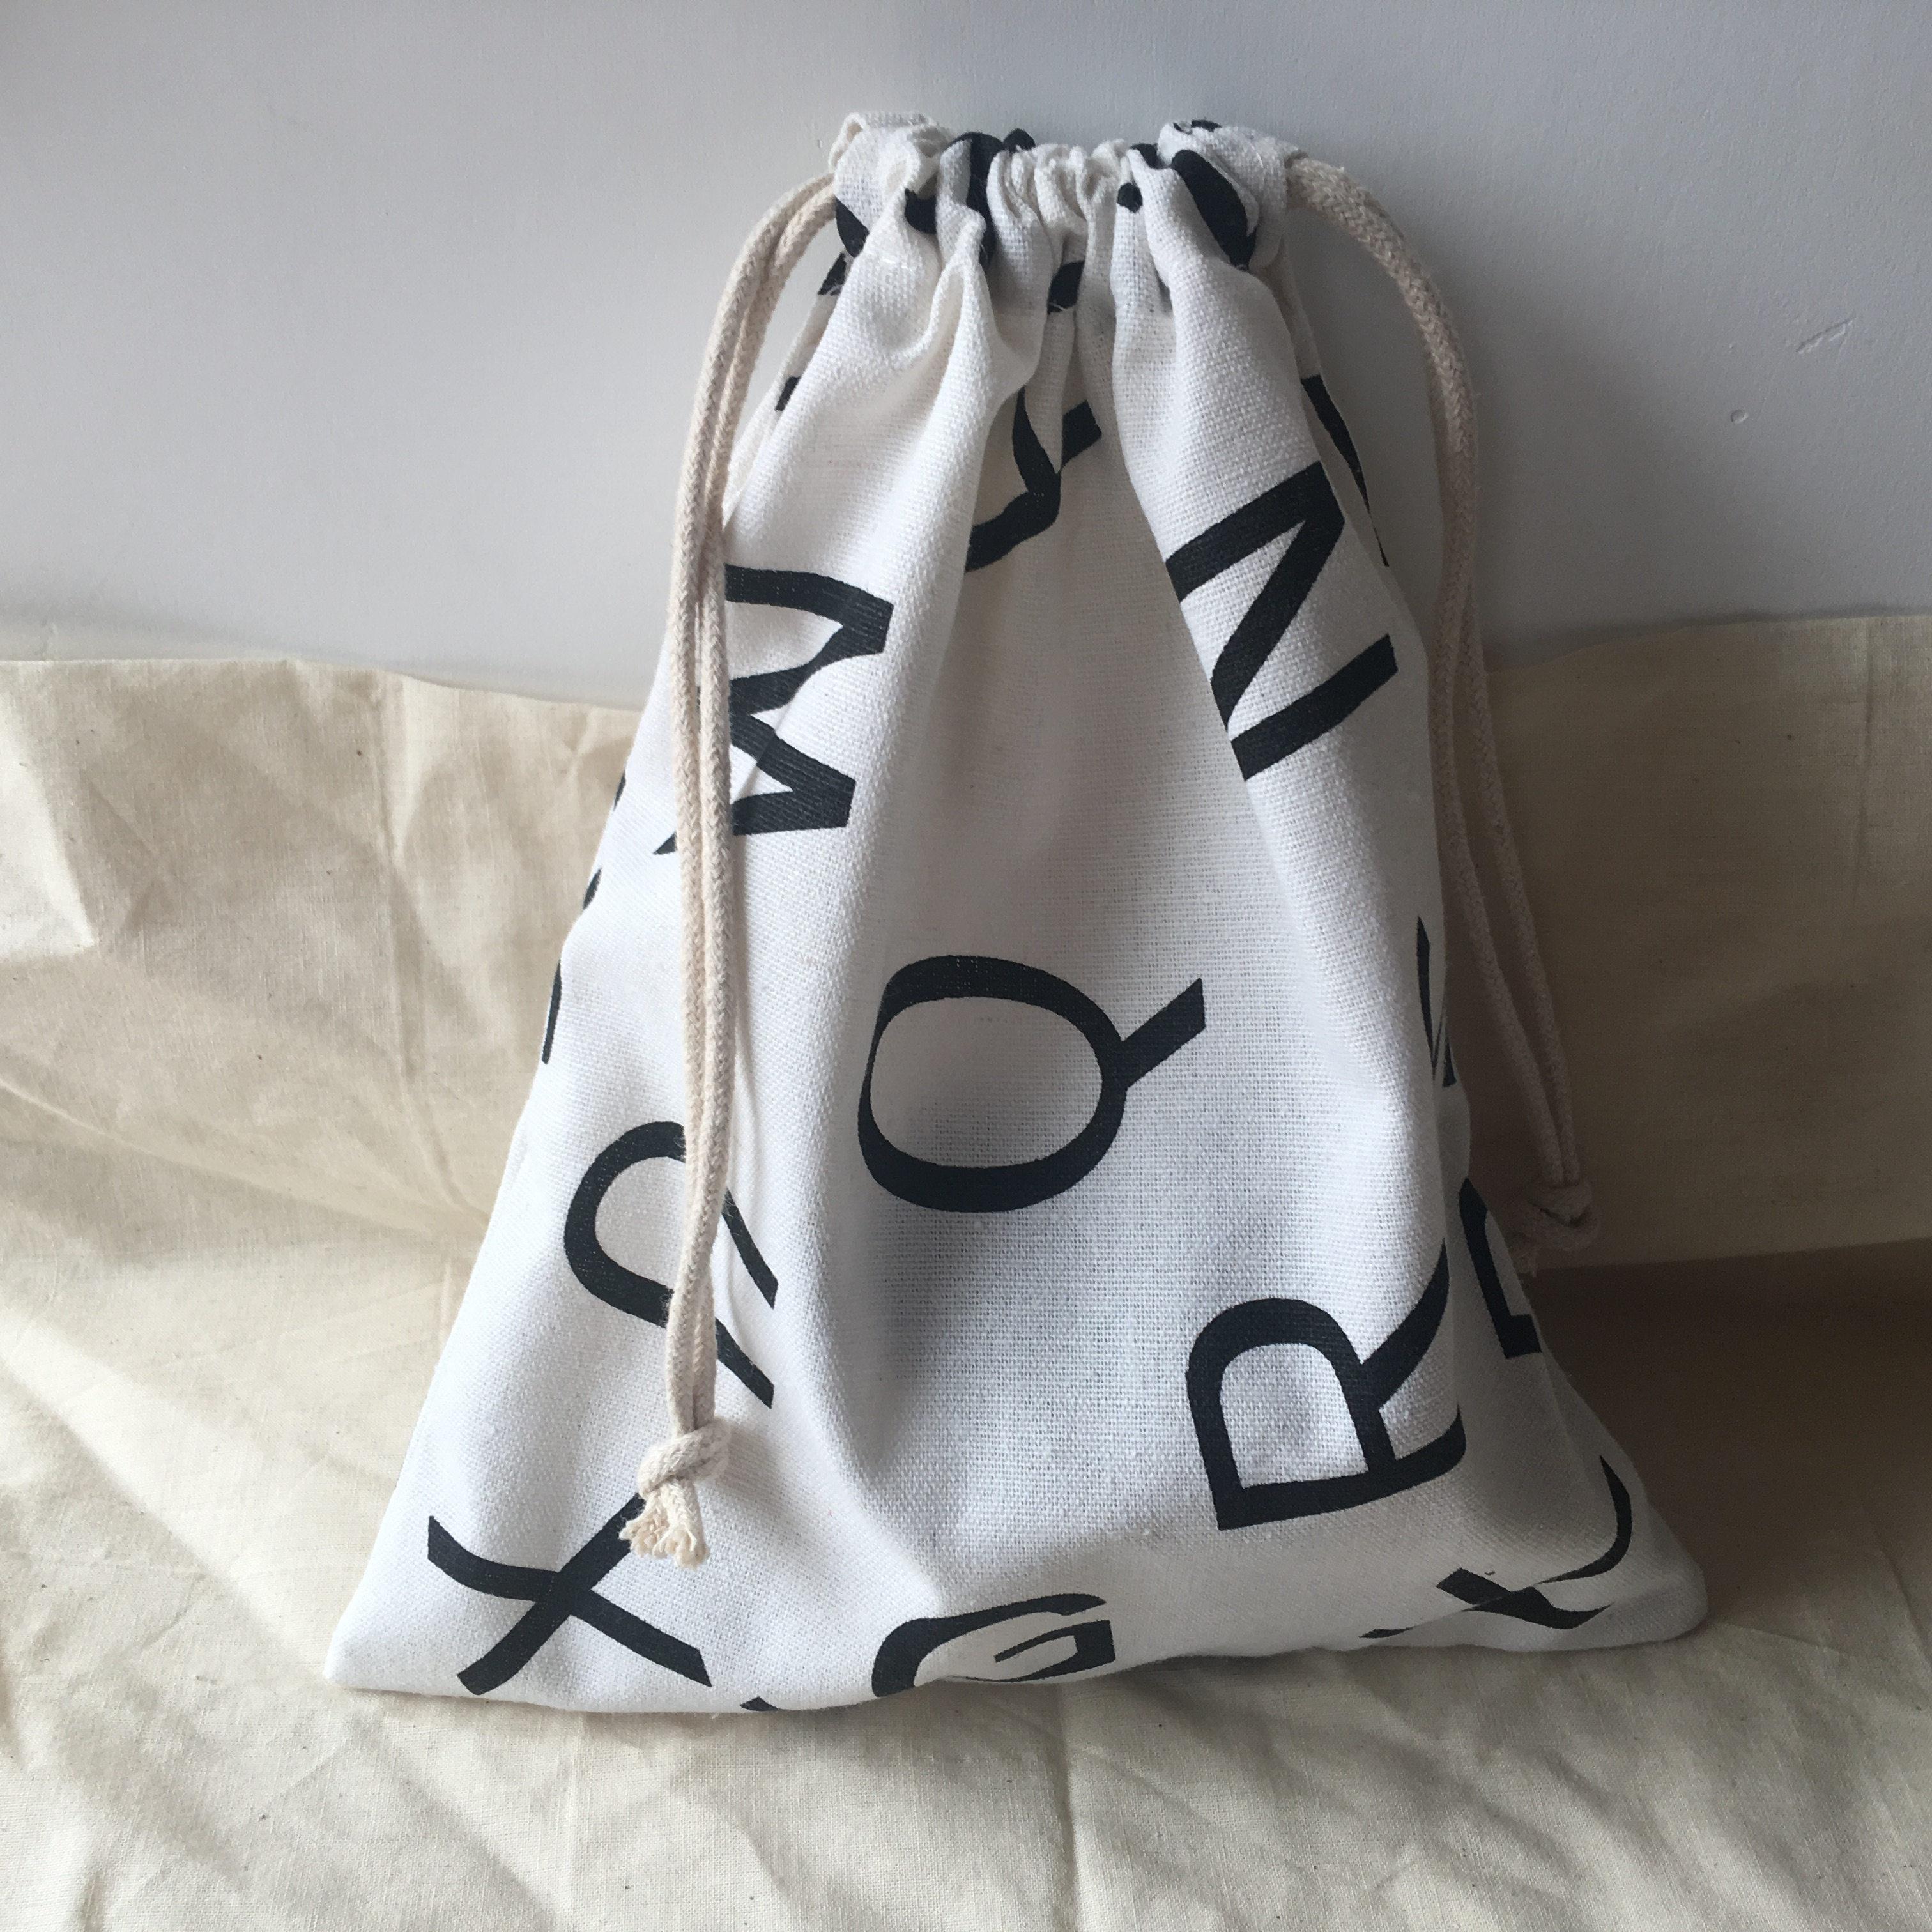 Cotton Linen Drawstring Organised Pouch Party Gift Bag Print Black English Letter White Base YL610f